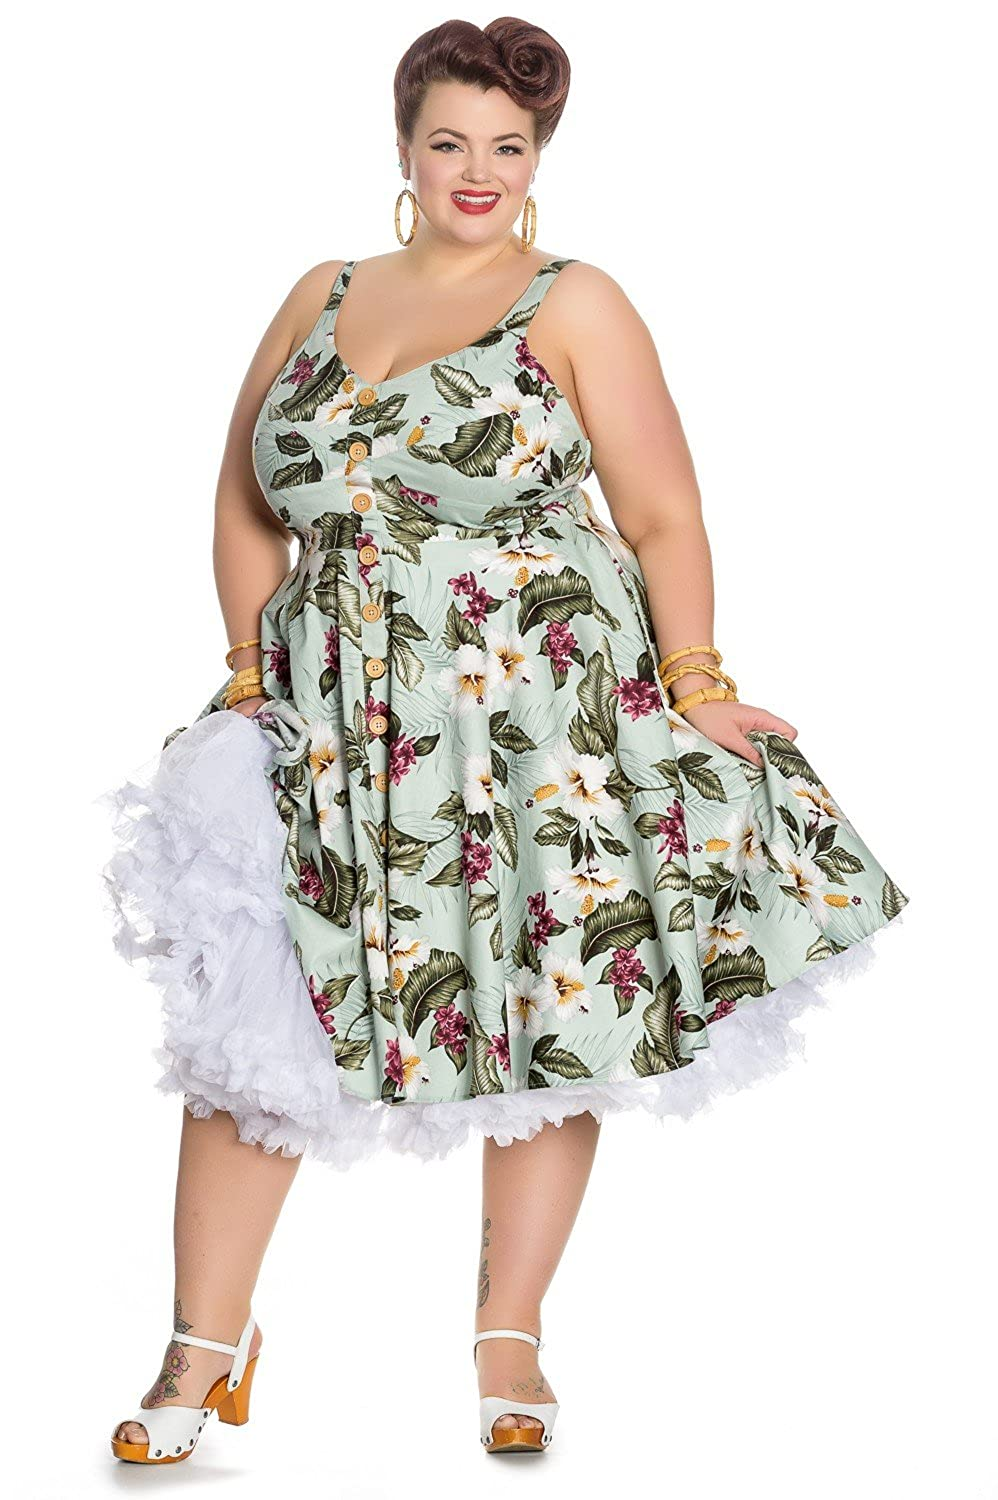 50s Costumes | 50s Halloween Costumes Hell Bunny Tahiti Tropical Floral 50s Vintage Rockabilly Flare Swing Party Dress $61.99 AT vintagedancer.com